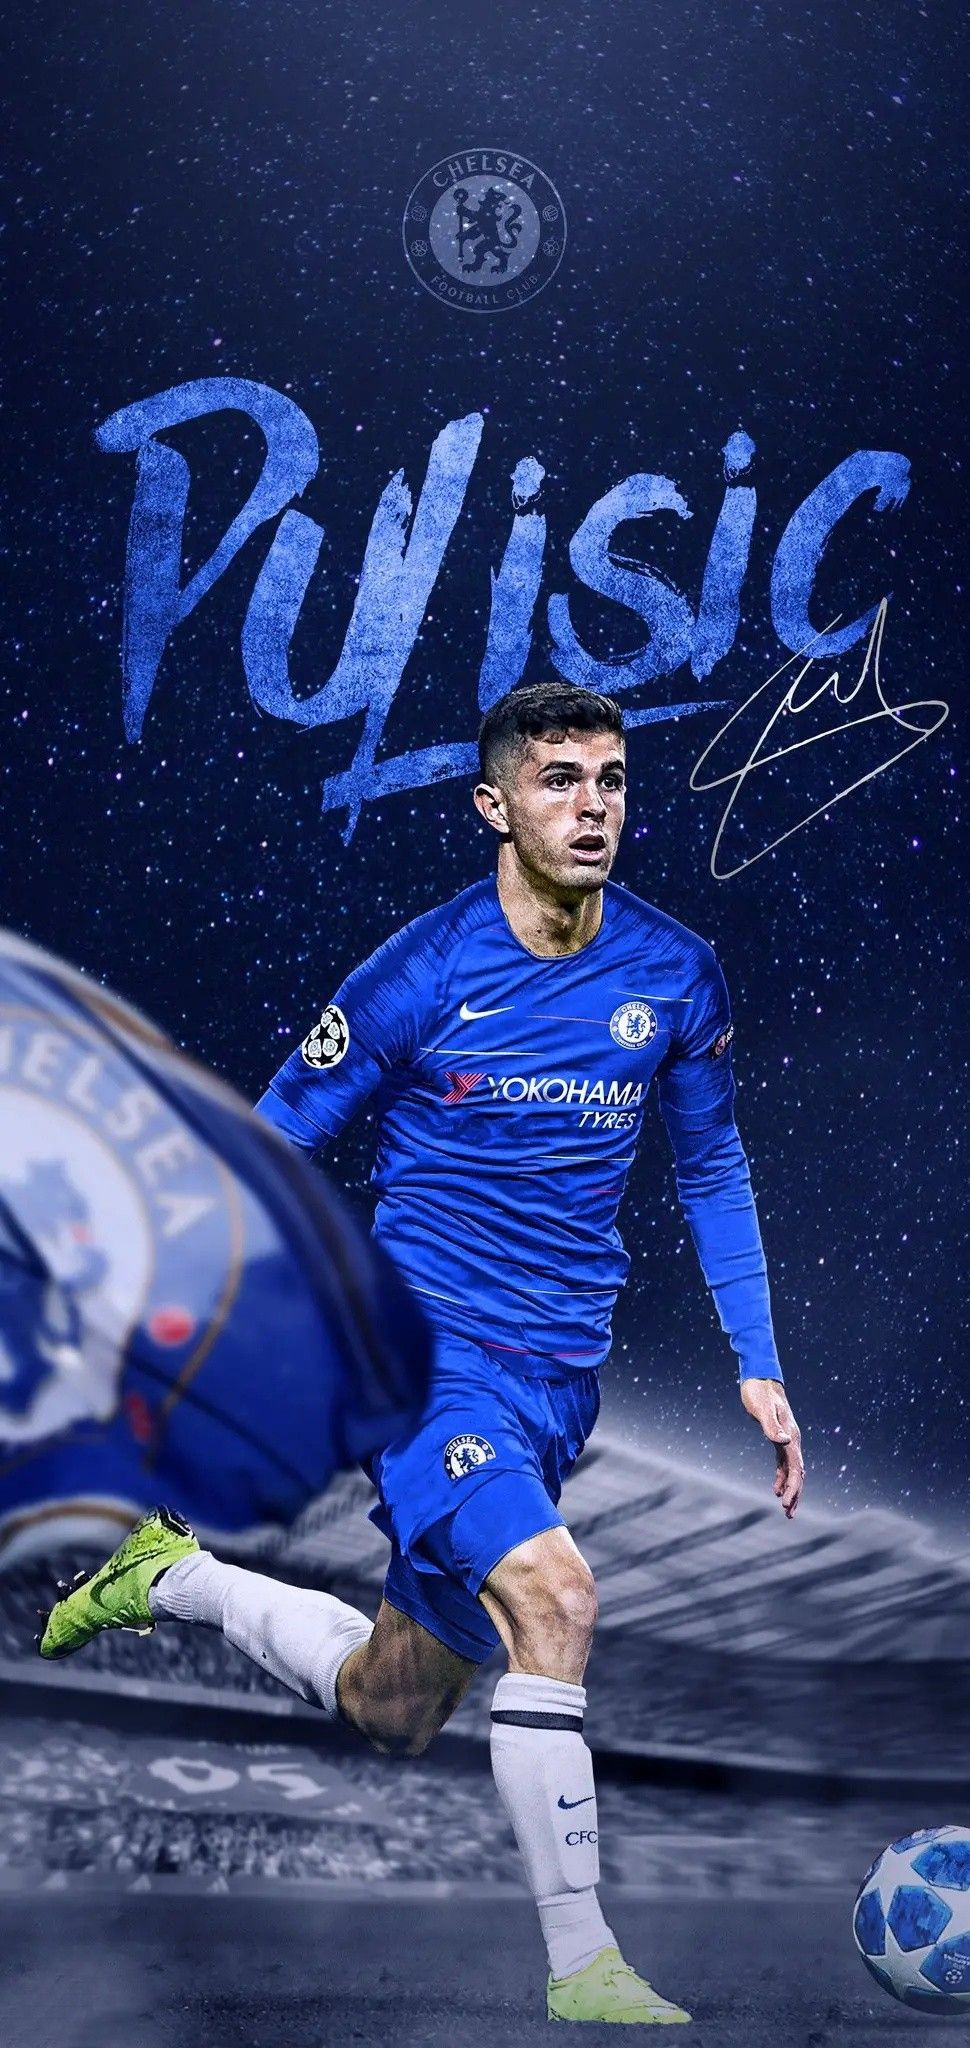 Pin By Asha Jones On Football Christian Pulisic Chelsea Football Club Wallpapers Chelsea Players